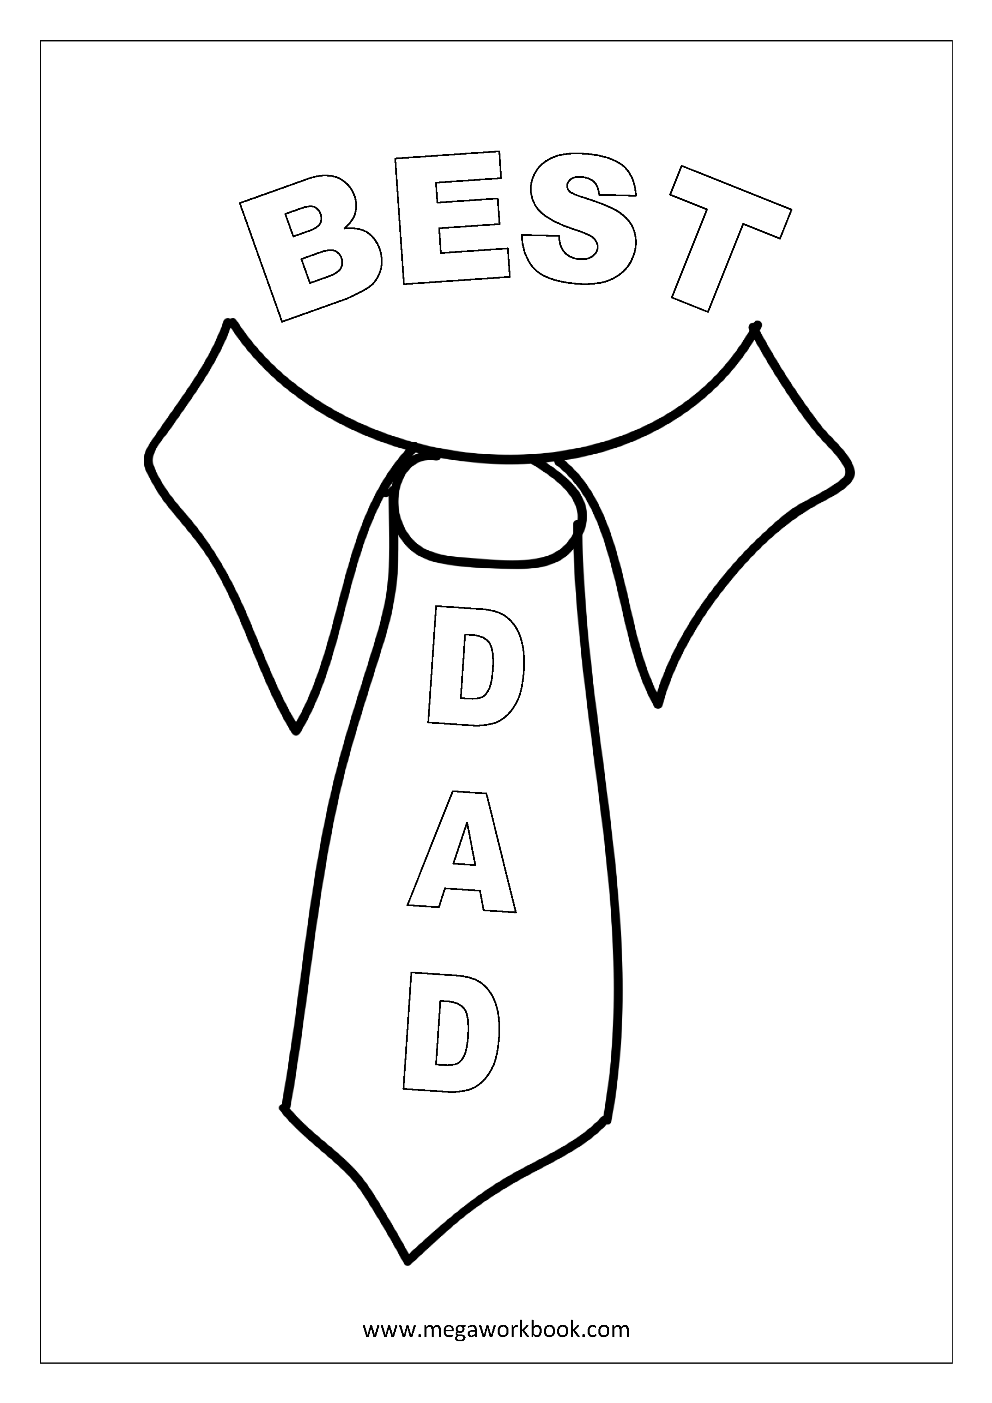 Free Printable Father's Day (Fathers Day) Coloring Pages